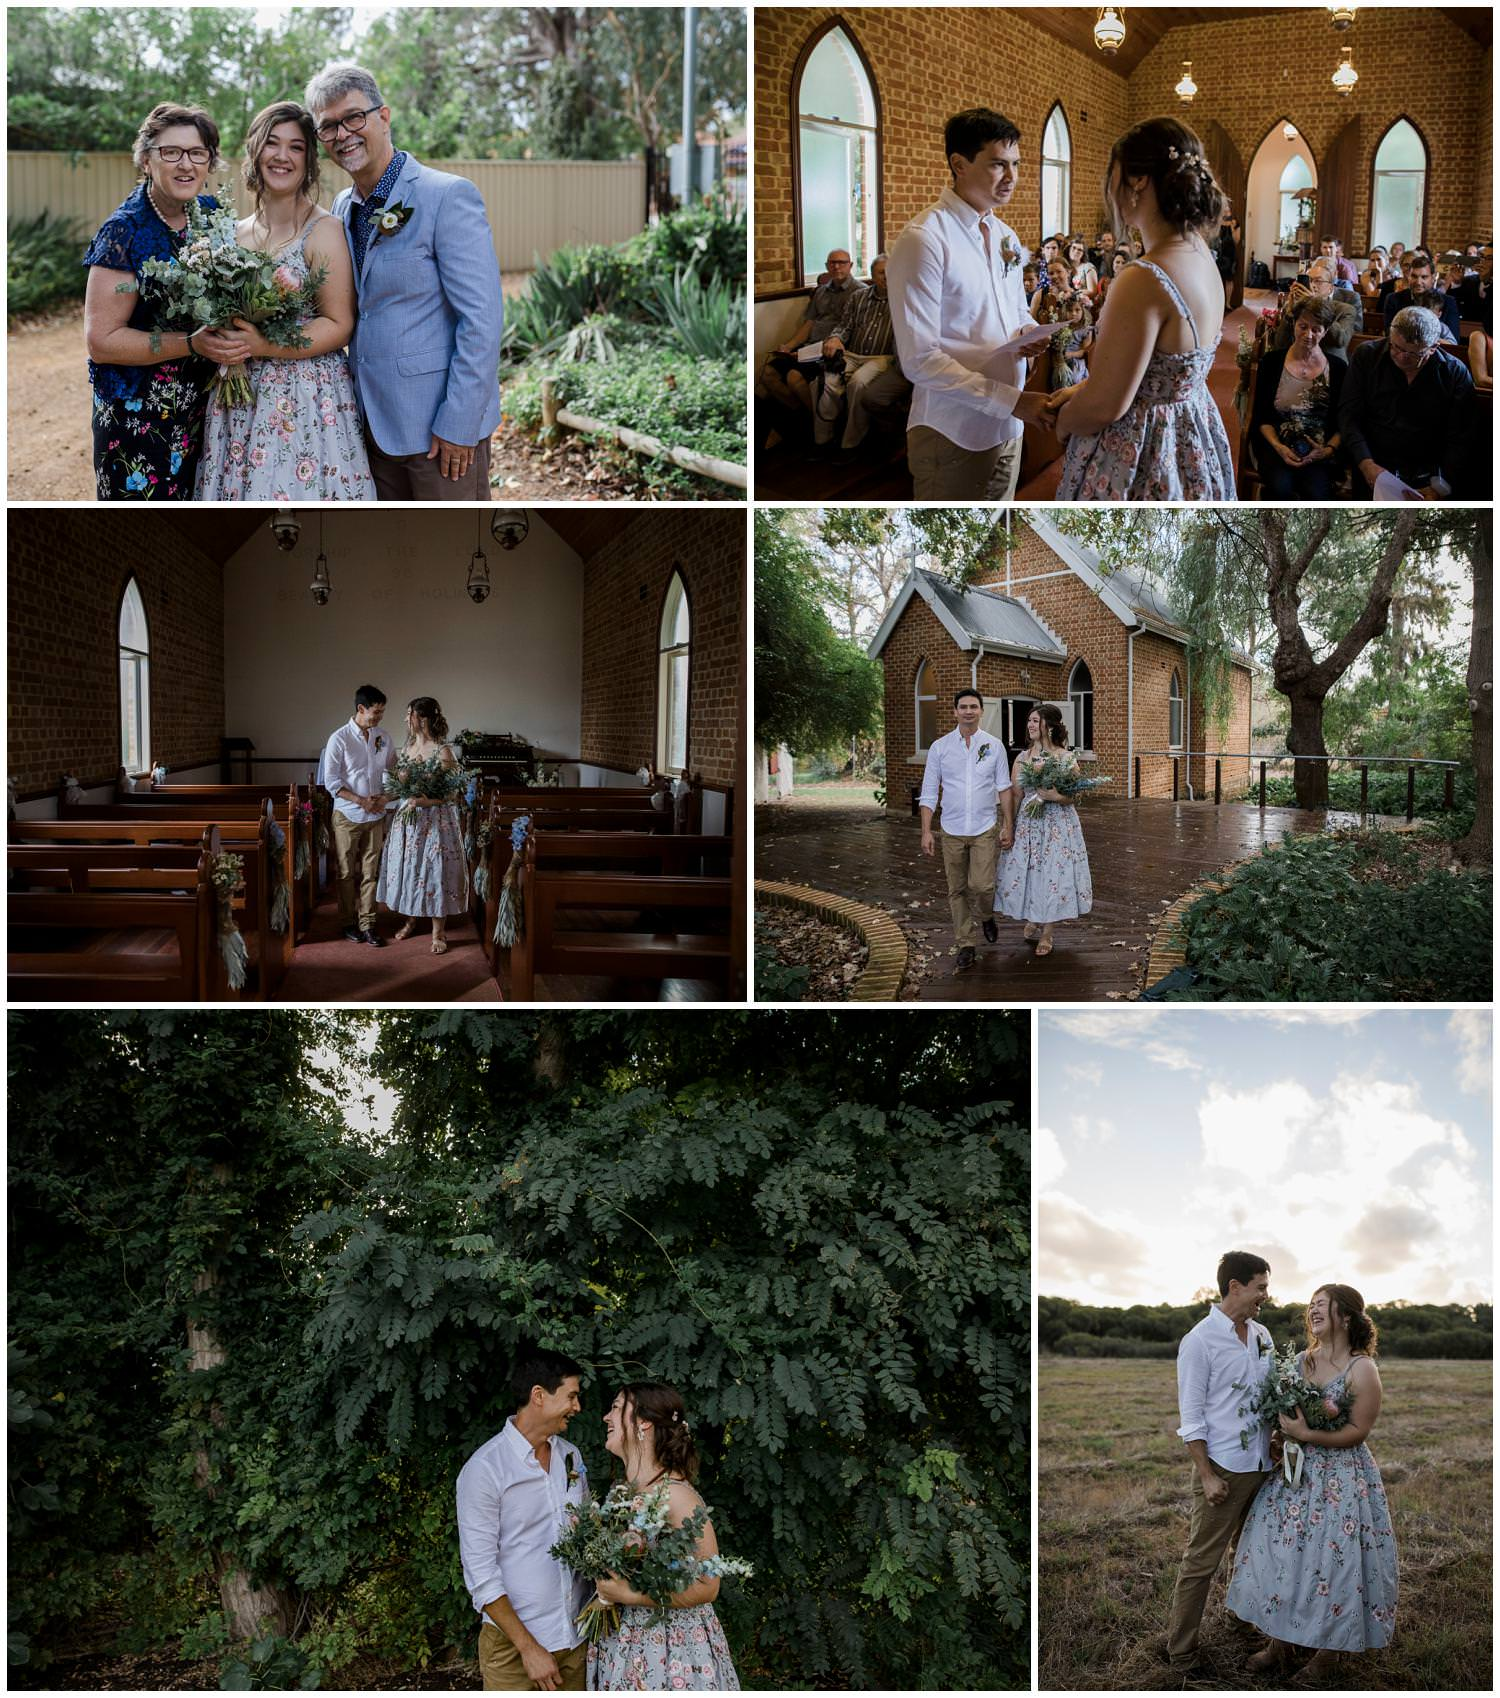 Keira-Jane + David - UWA Woodloes Homestead Wedding